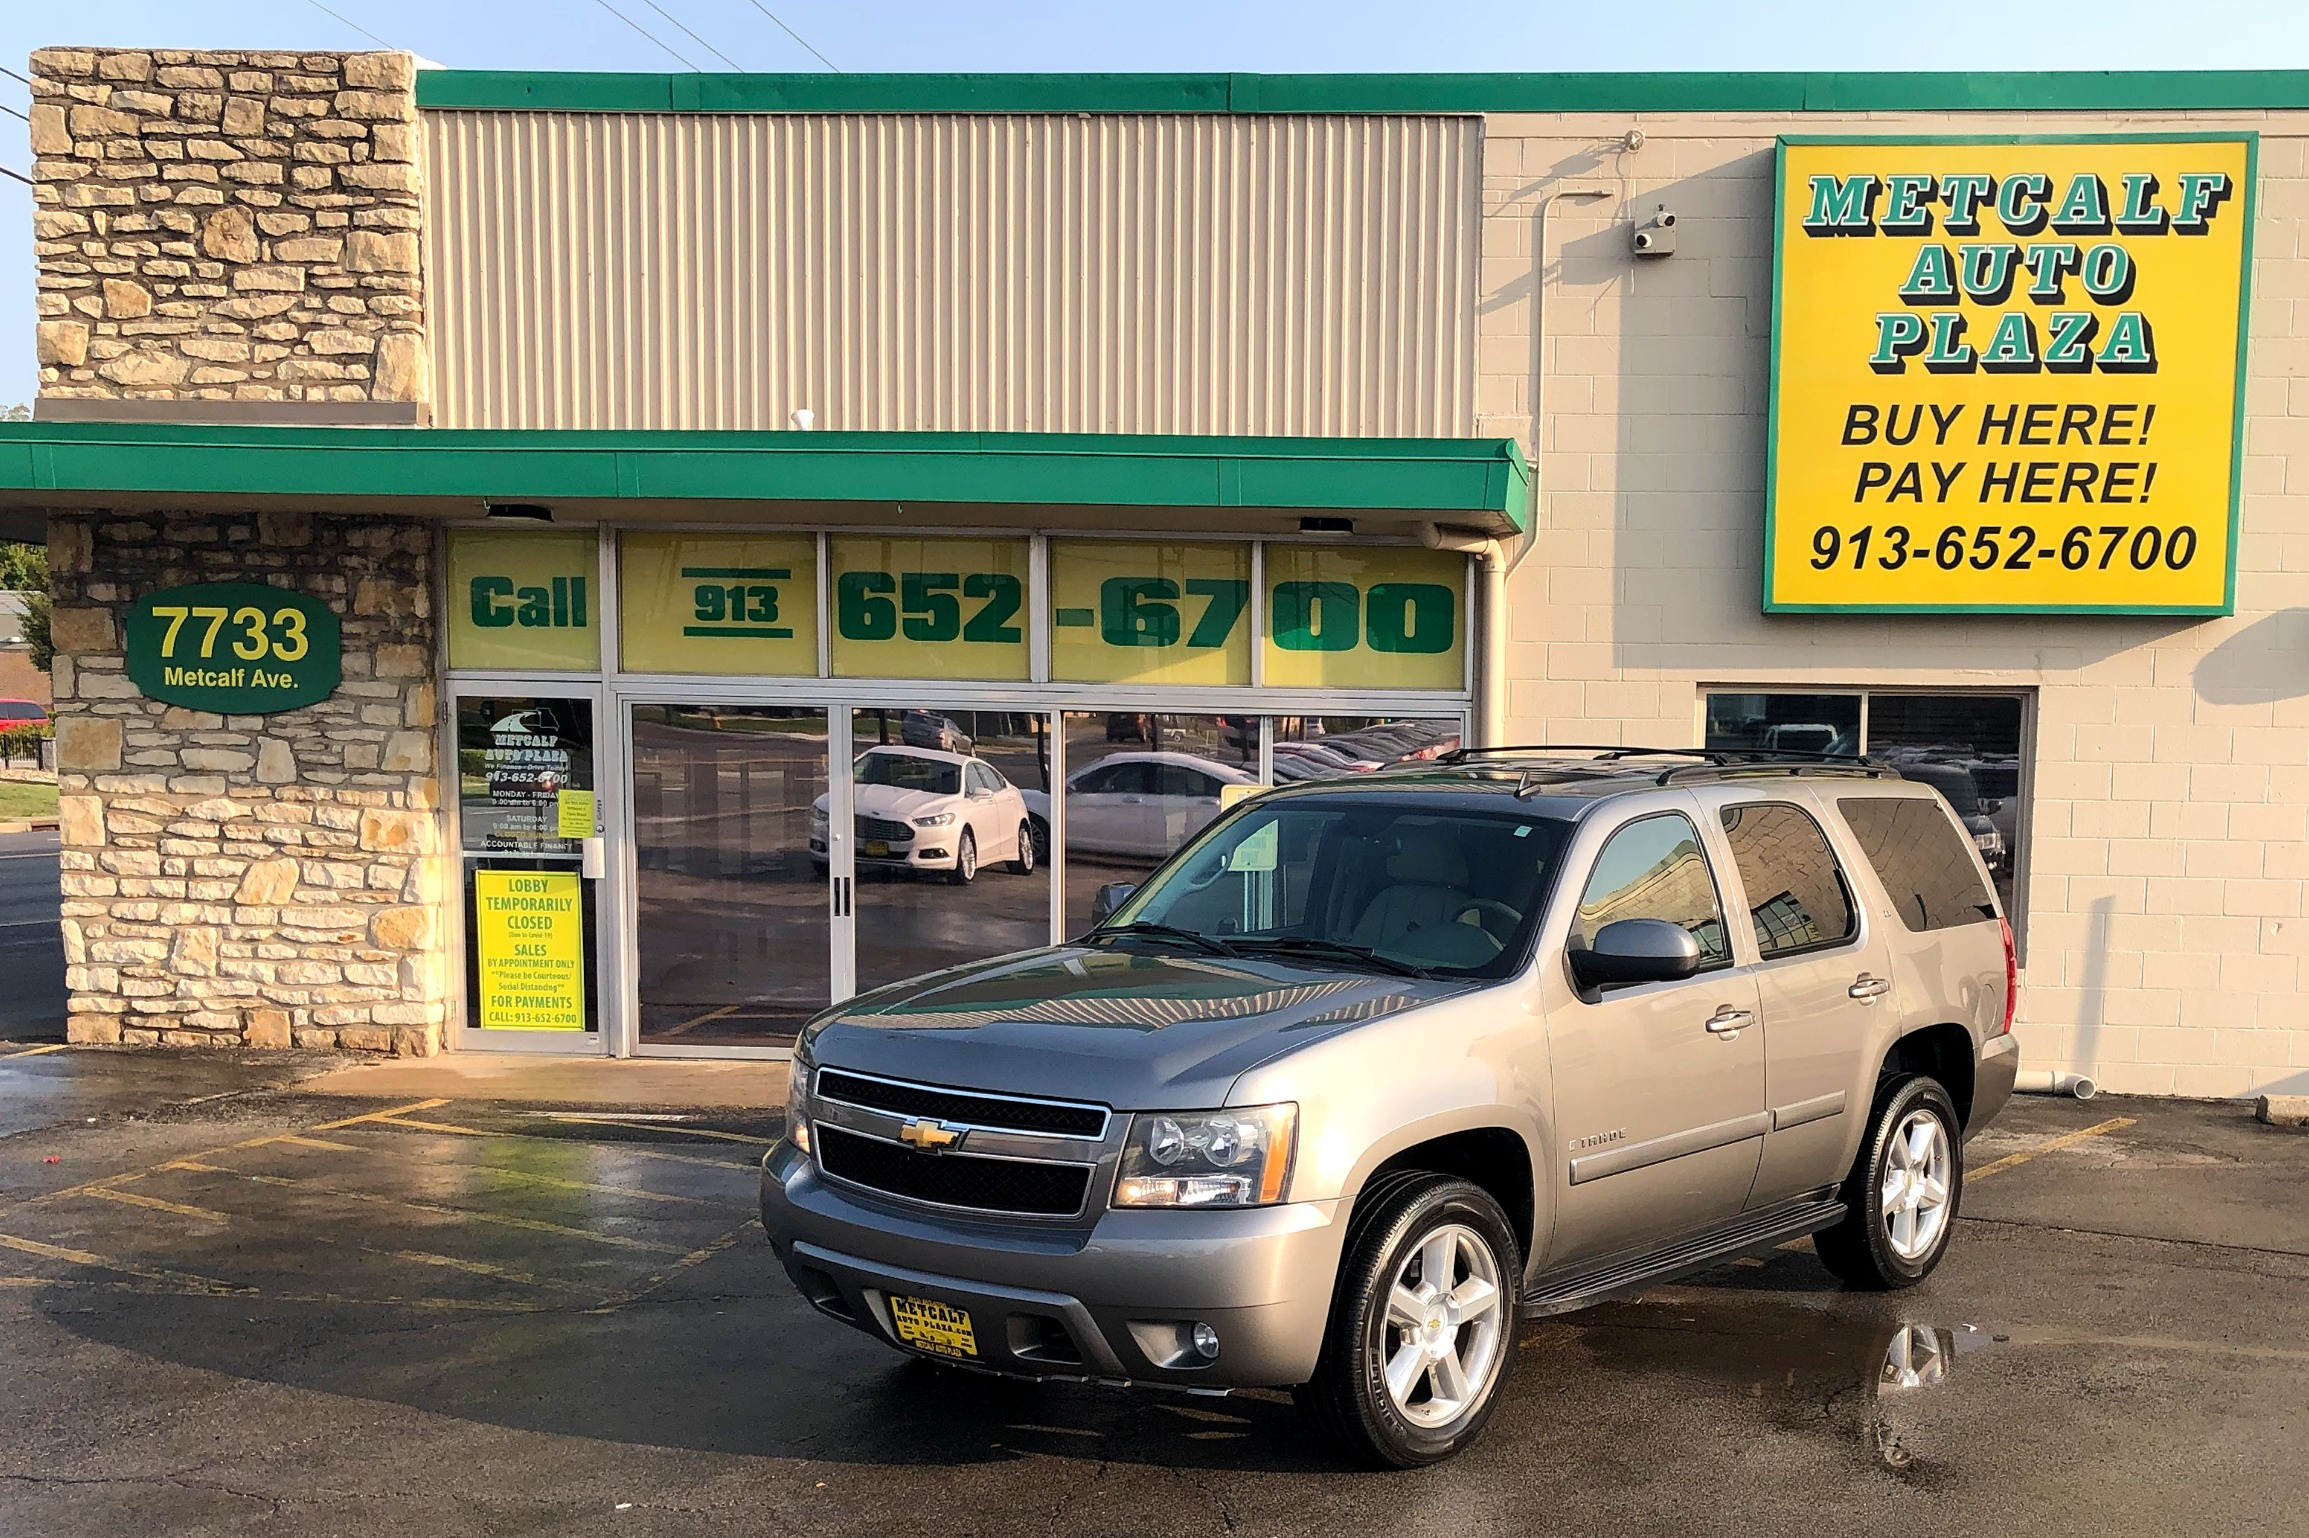 Chevy Tahoe 2007 - Sold Fast